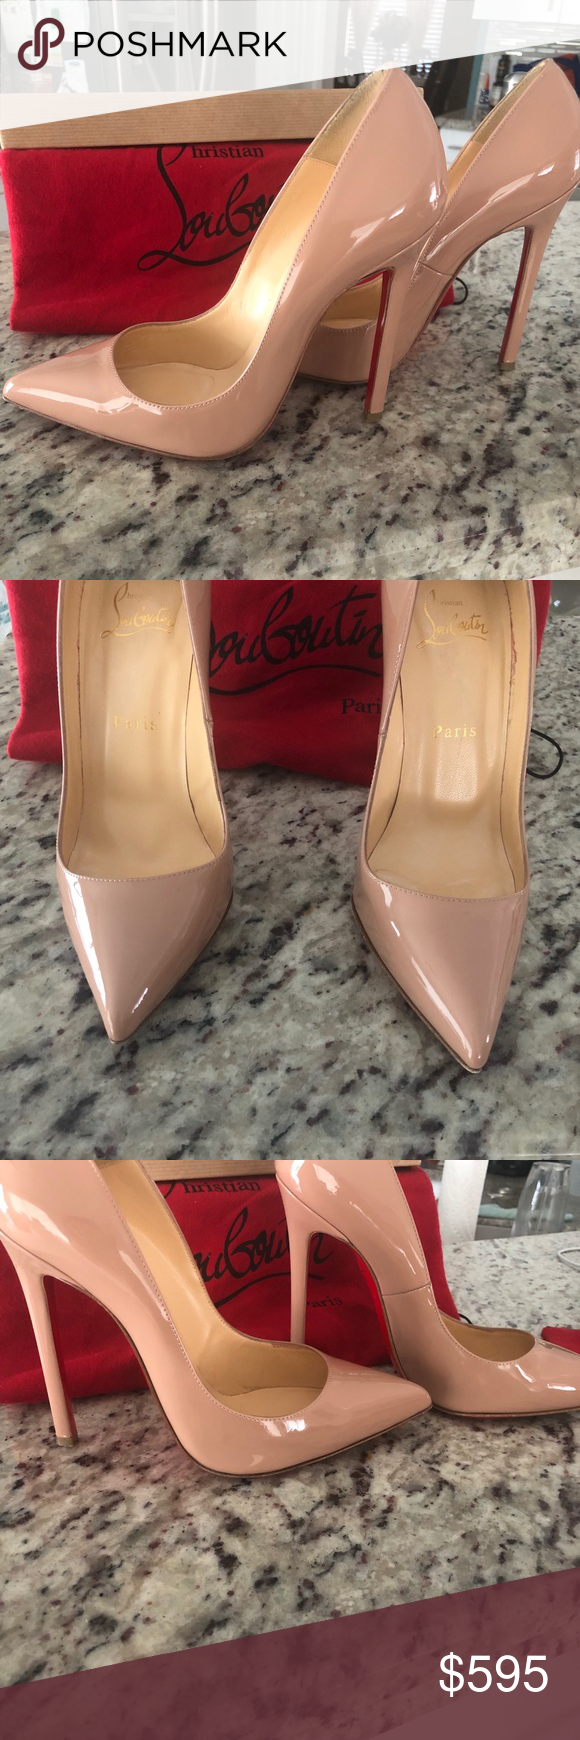 Christian Louboutin Pigalle Patent Heels Patent Heels Christian Louboutin Pigalle Christian Louboutin